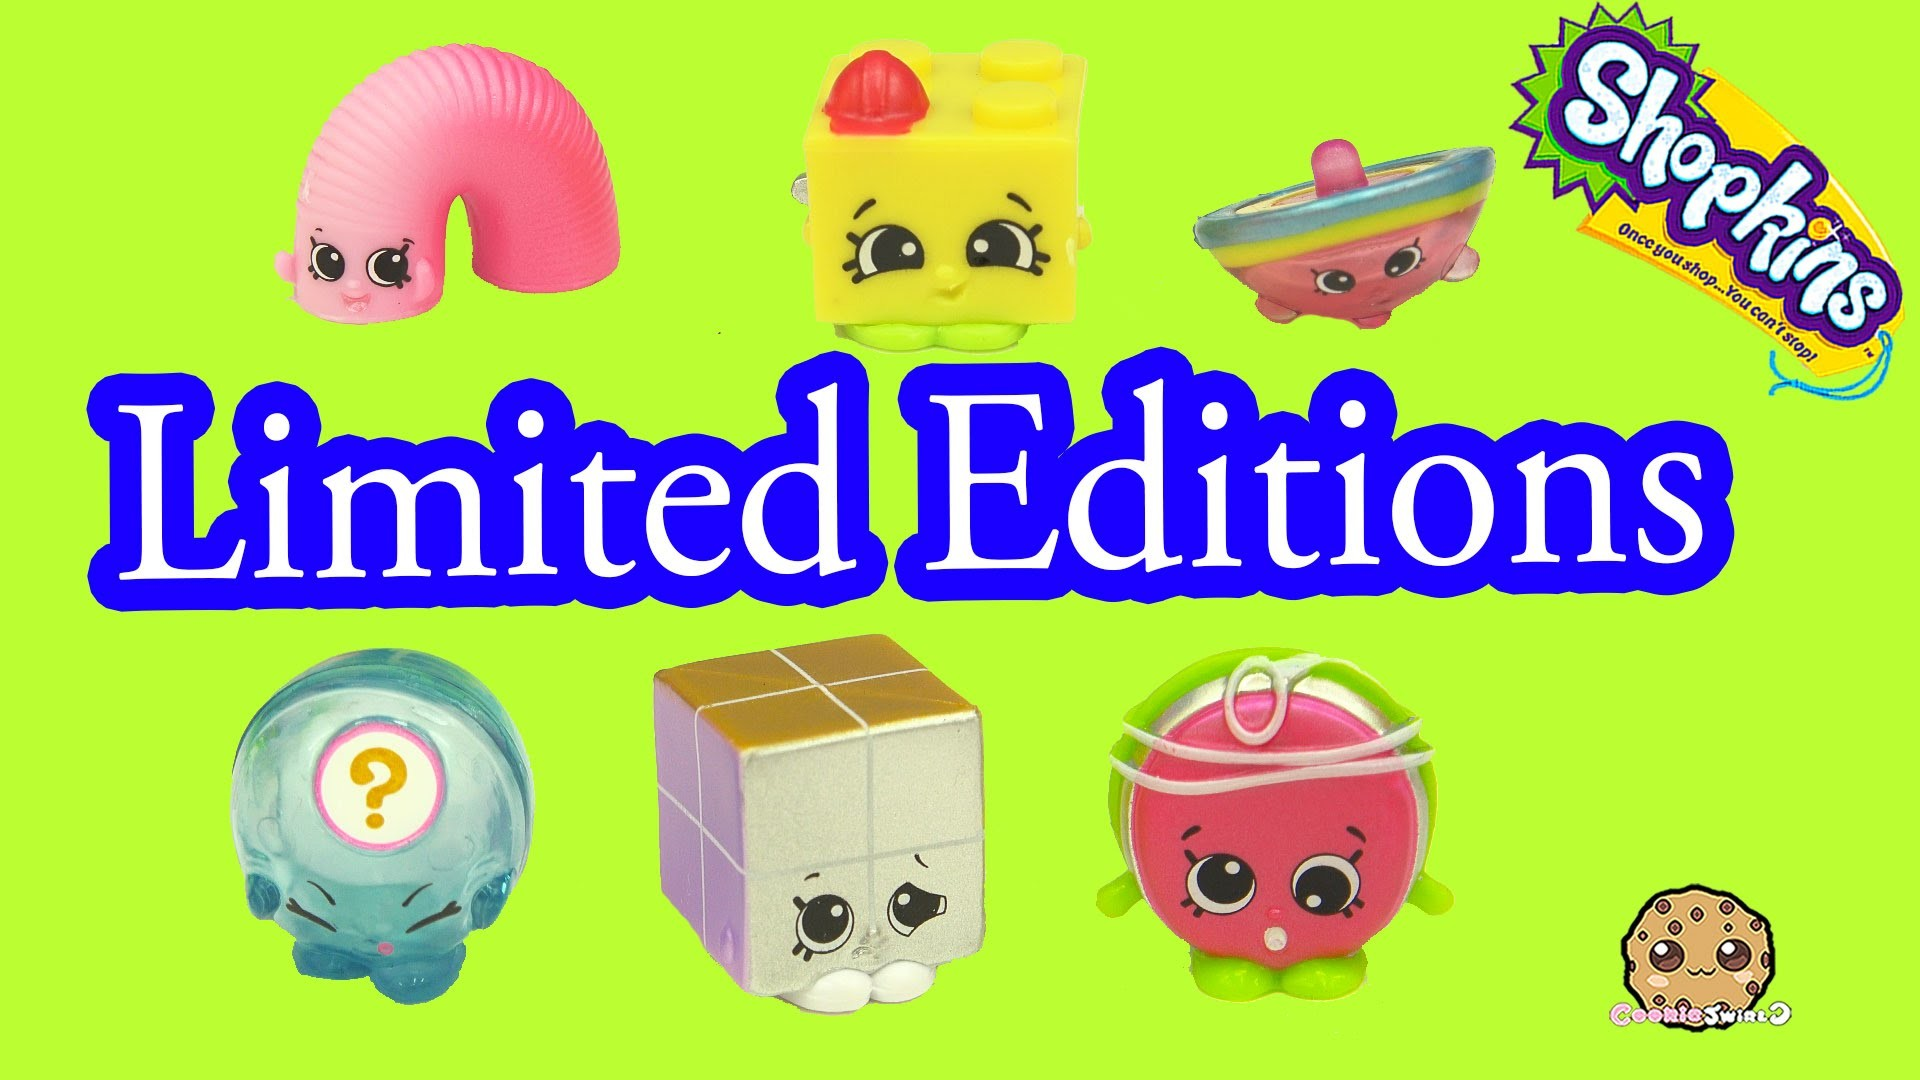 1920x1080 All 6 Season 5 Shopkins Tiny Toys Limited Edition Complete Set Blind Bag Opening